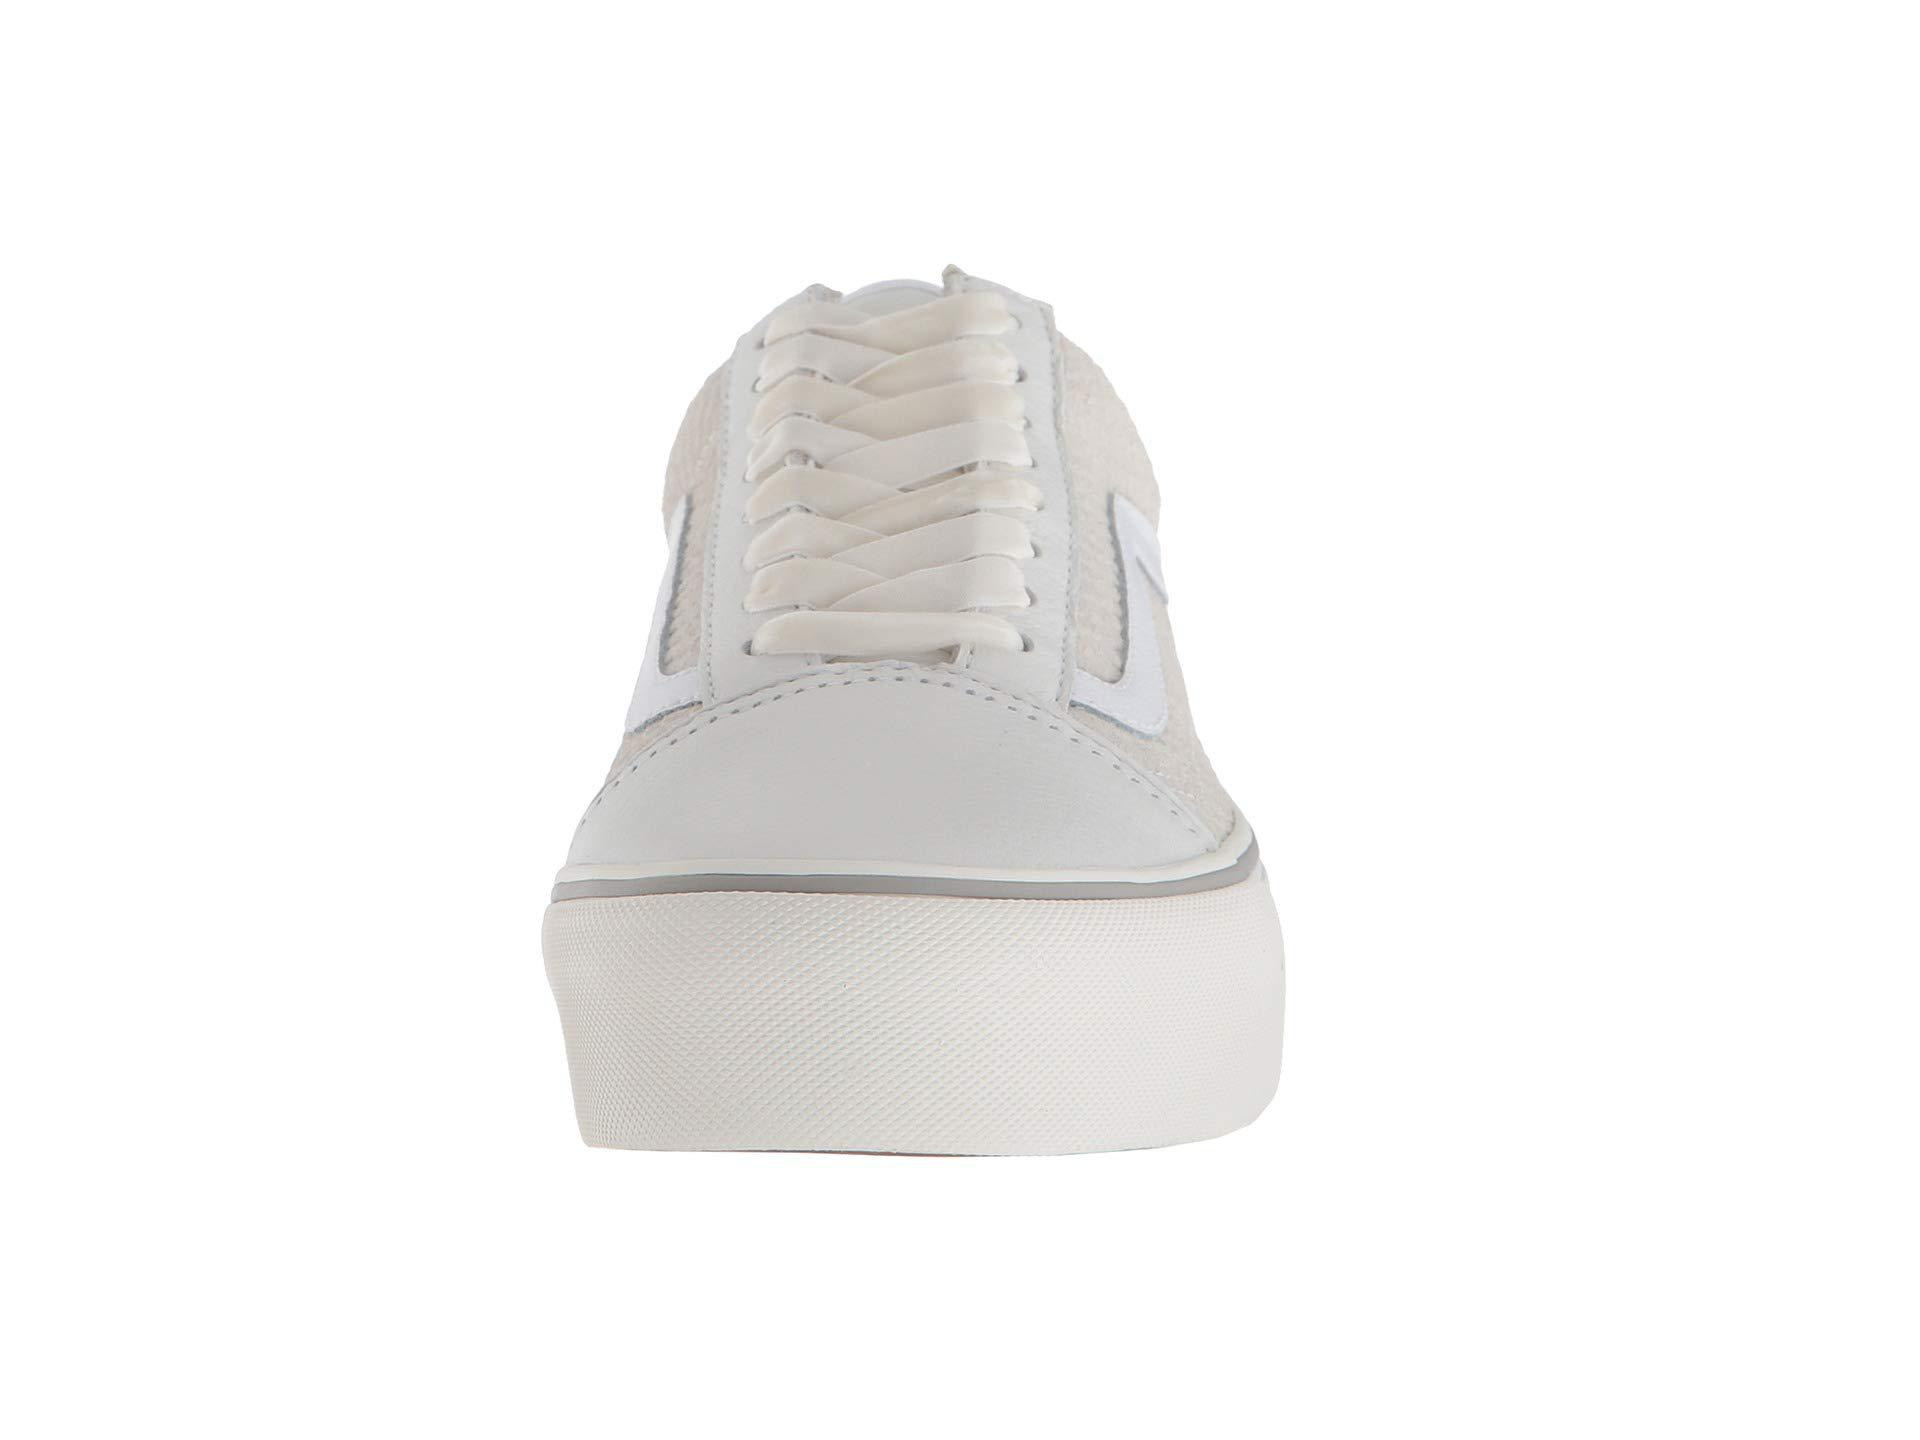 f2045cd3e4c Lyst - Vans Old Skool Platform ((leather) Snake white) Skate Shoes ...